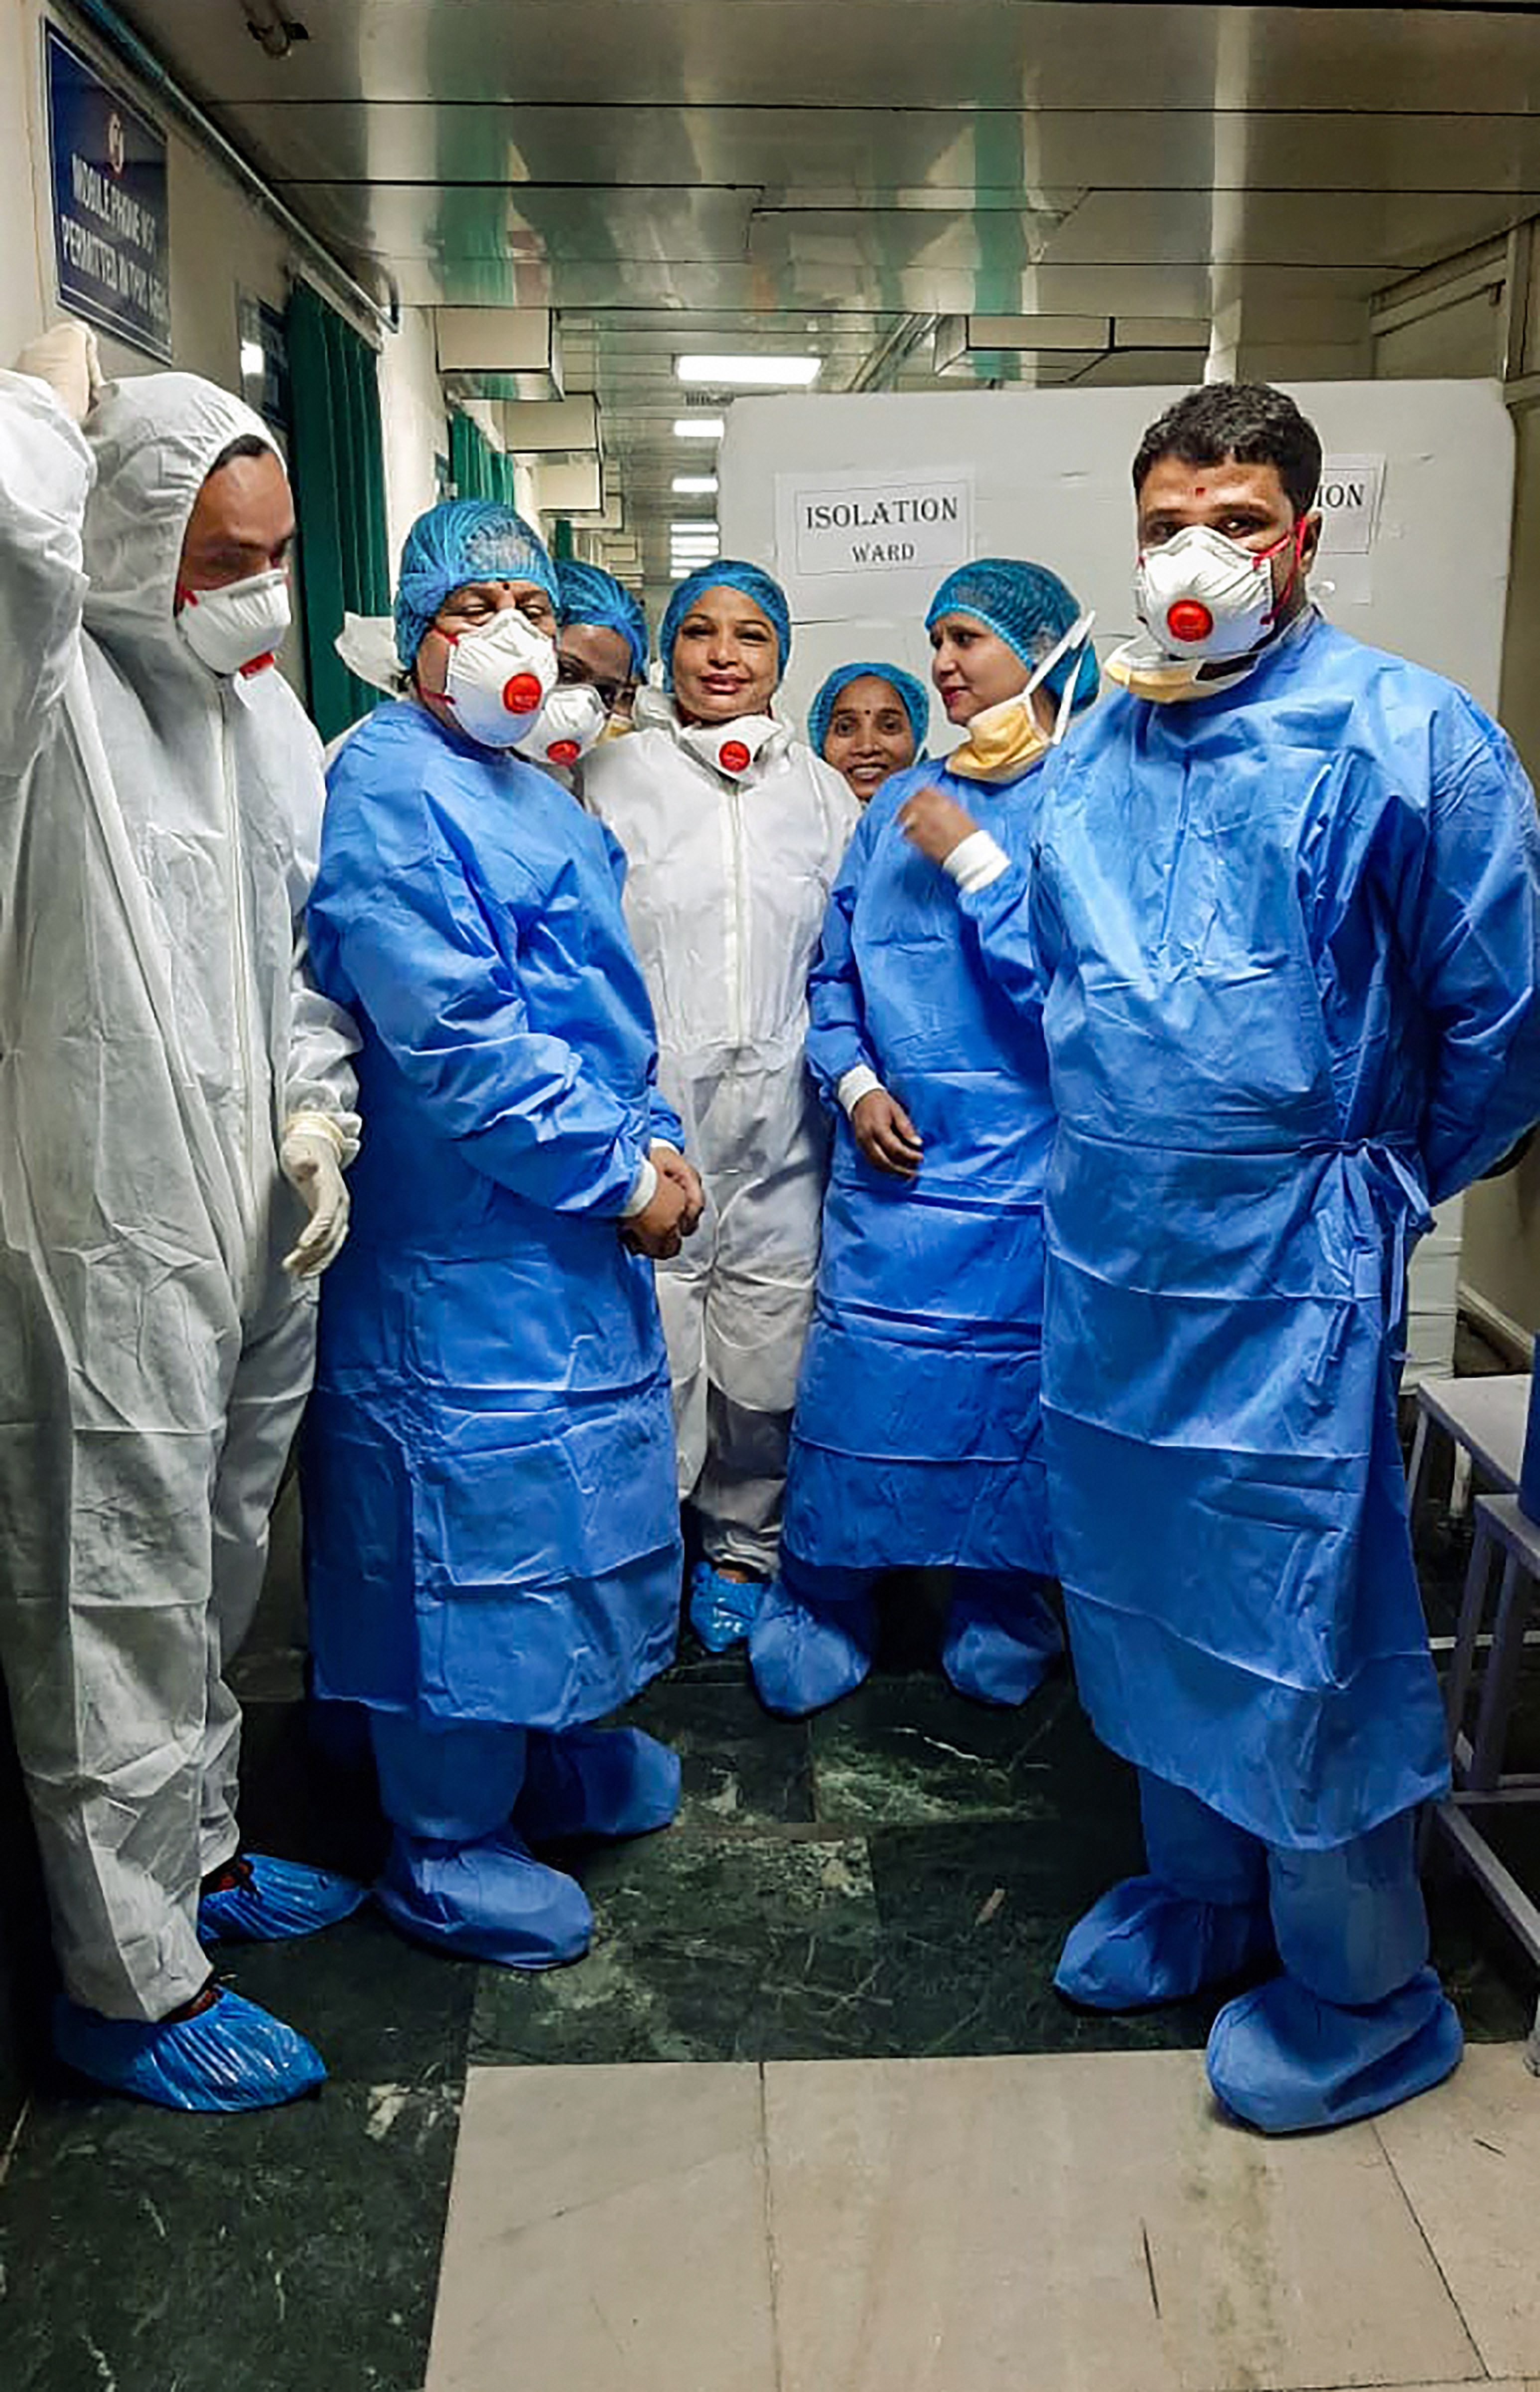 A team led by director of NCDC Dr Sujeet Singh visits the Ram Manohar Lohia Hospital to review the preparedness of the management for providing treatment to any suspected cases of the coronavirus (CoV), in New Delhi, Monday, Janaury 27, 2020.